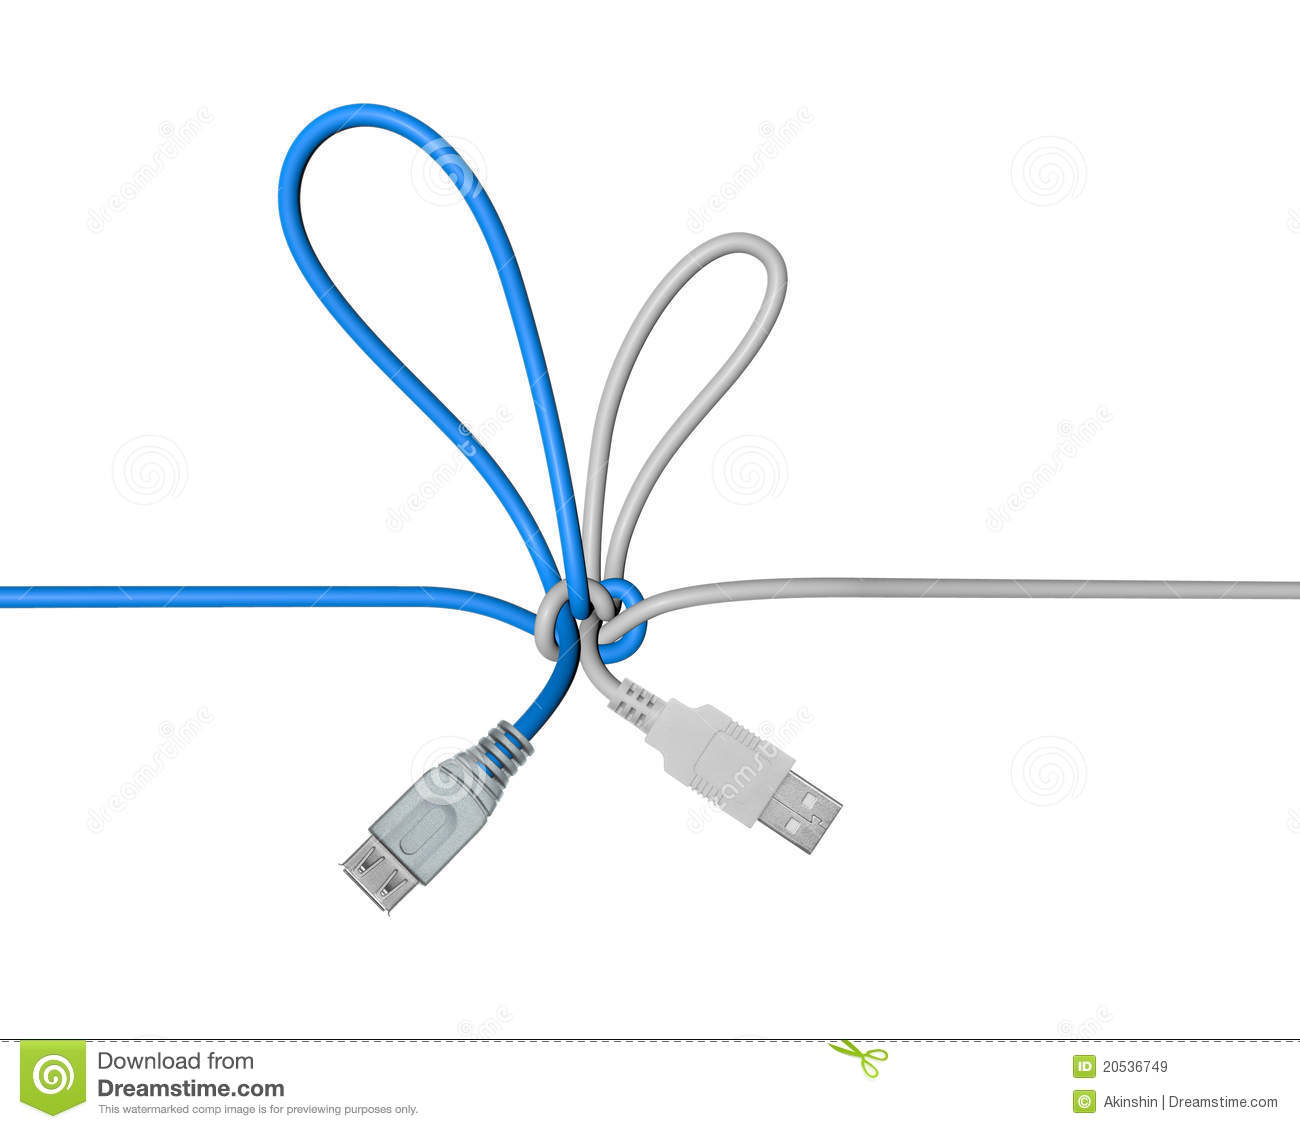 usb wire tied in a knot royalty free stock images image 20536749. Black Bedroom Furniture Sets. Home Design Ideas